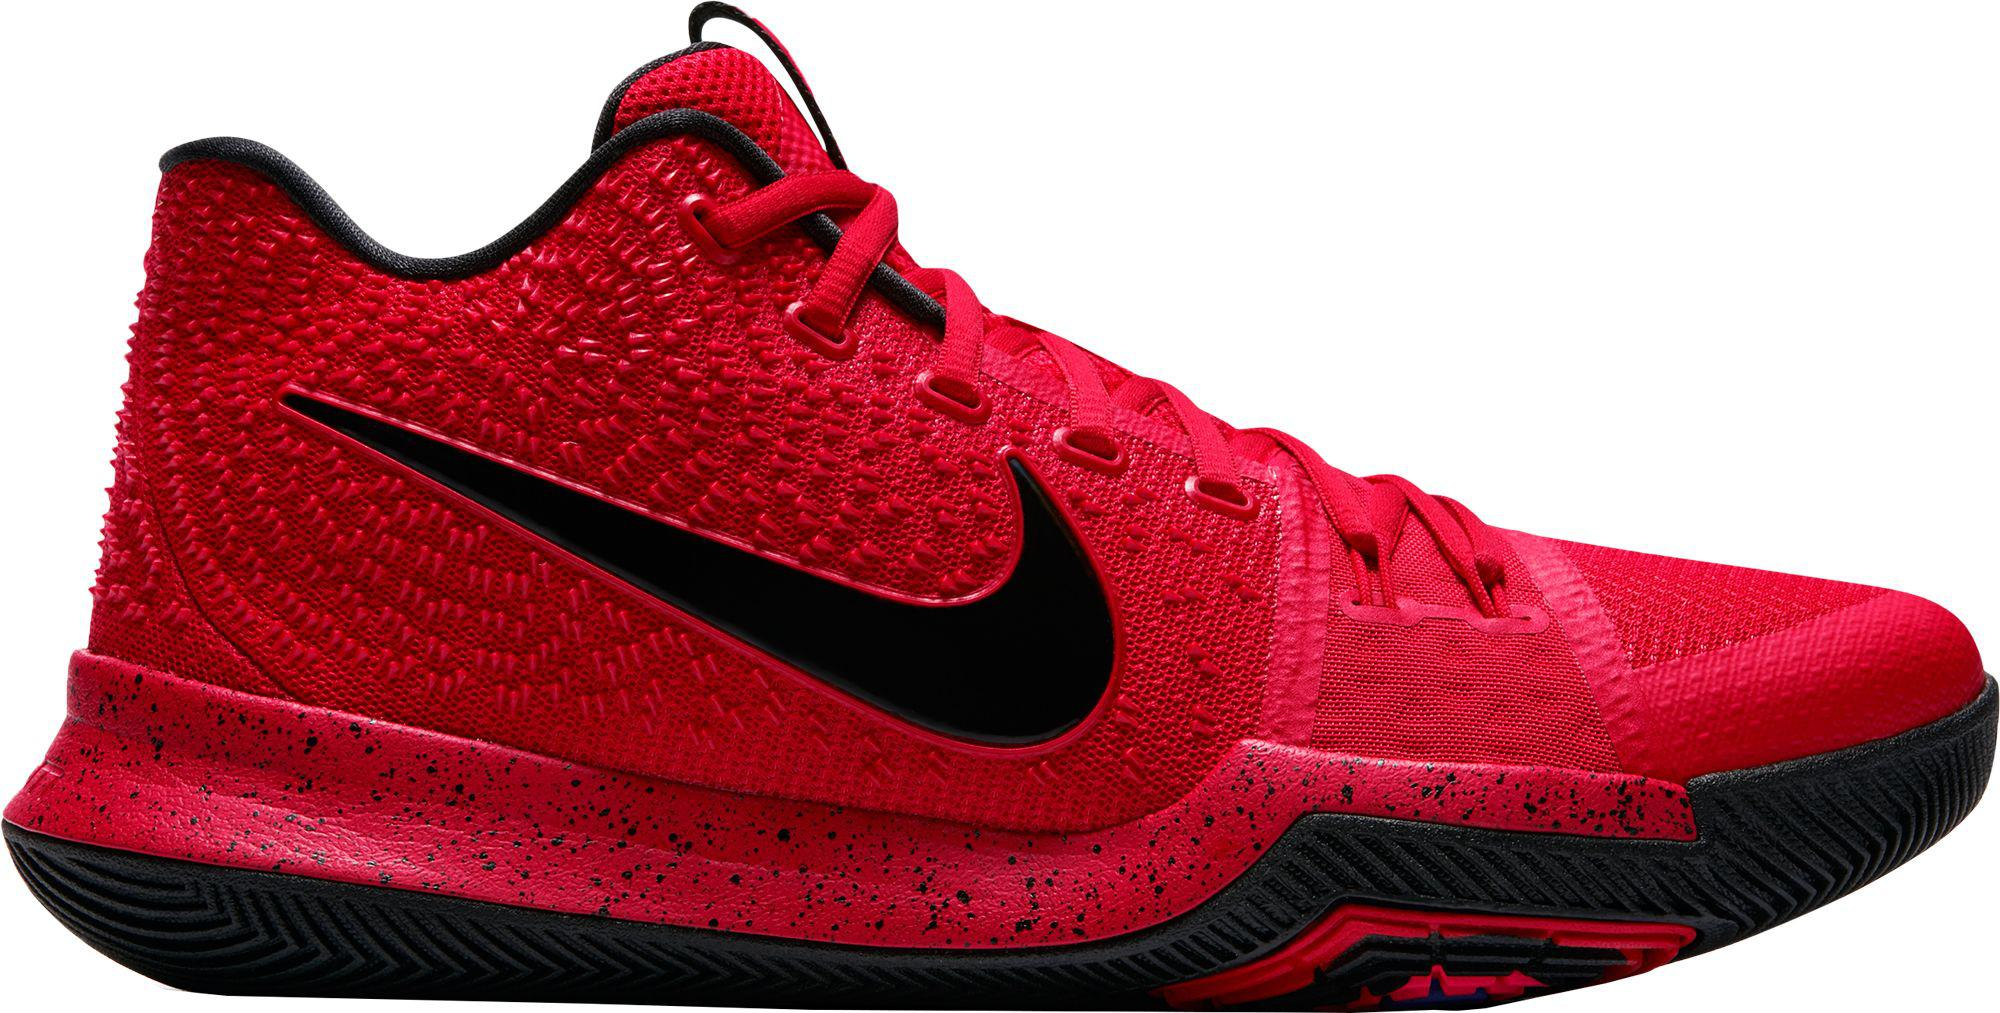 Lyst - Nike Kyrie 3 Basketball Shoes in Red for Men 1a91ec8f7